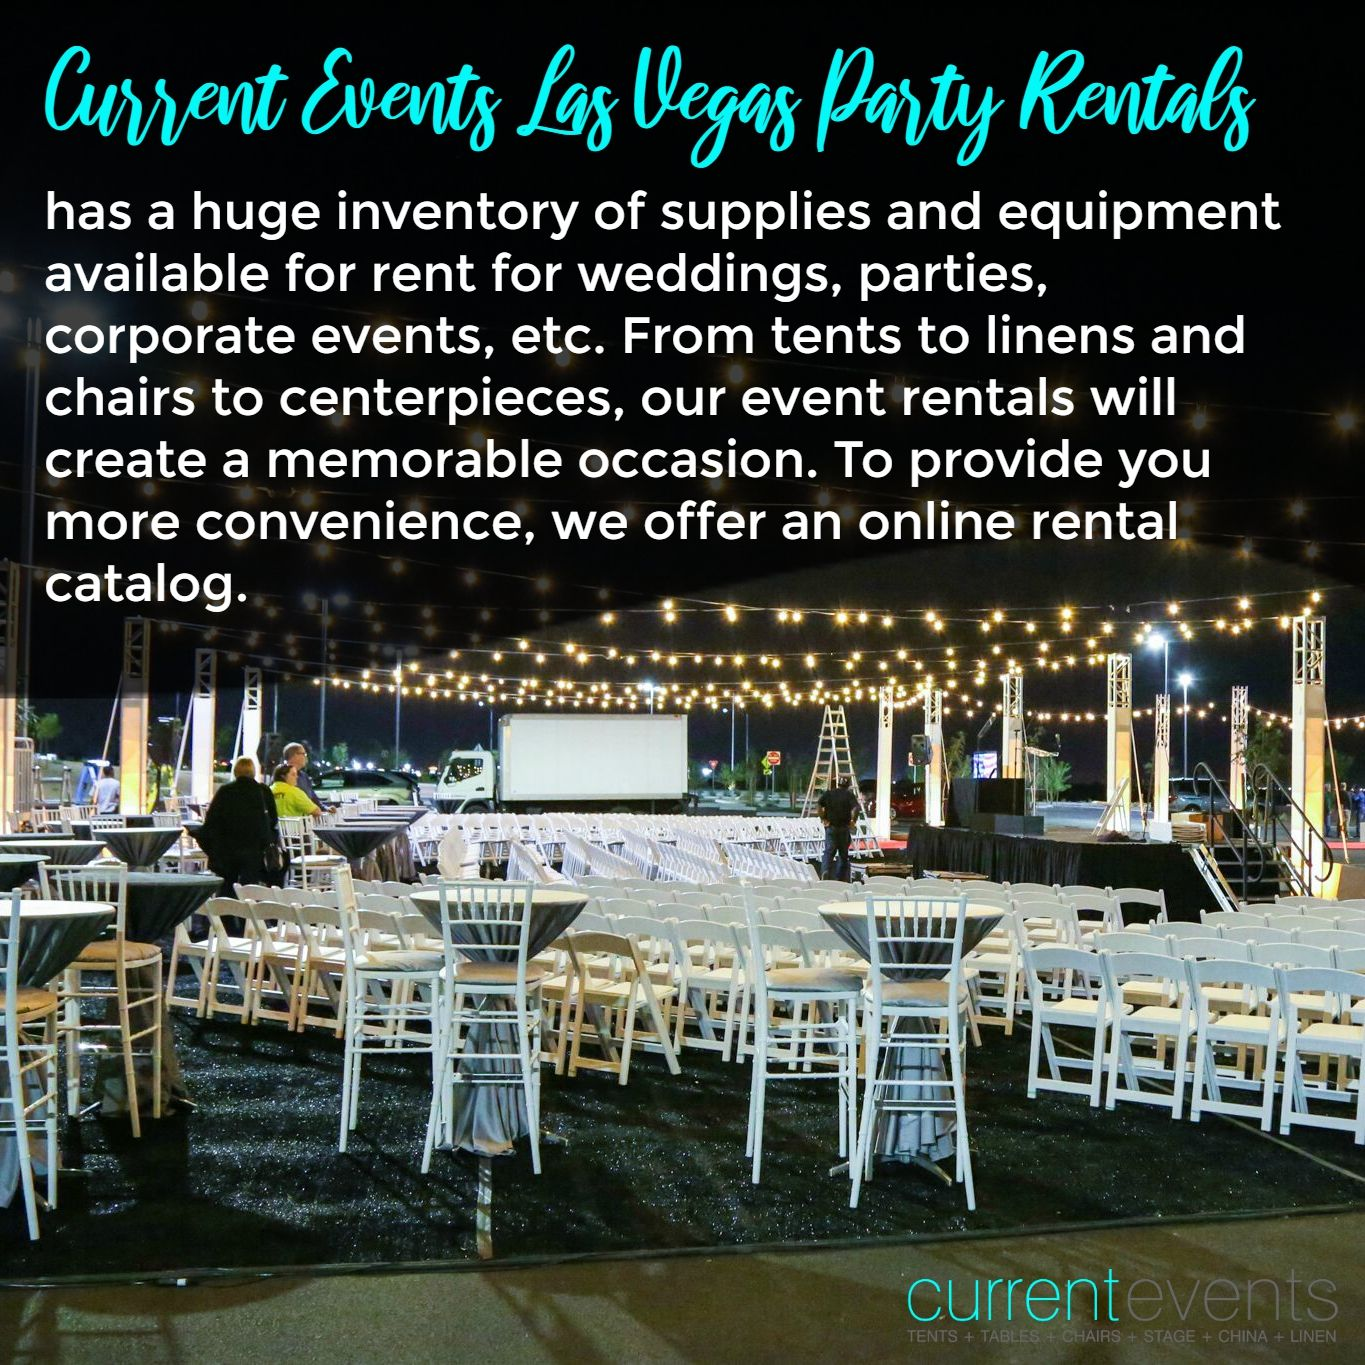 Current Events Las Vegas Party Rentals Has A Huge Inventory Of Supplies And Equipment Available For Rent For Weddin Las Vegas Party Event Rental Current Events